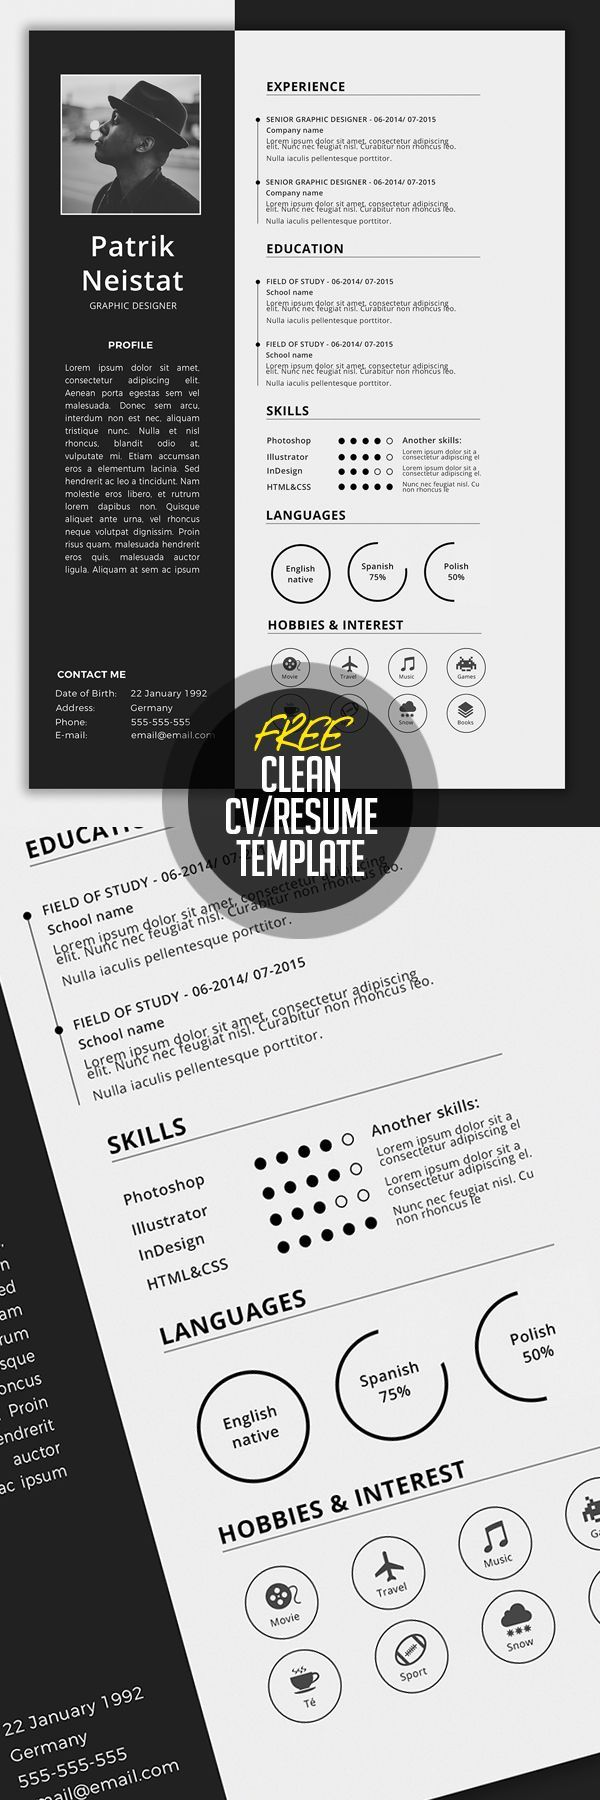 62 best Making a Good CV images on Pinterest | Resume tips ...